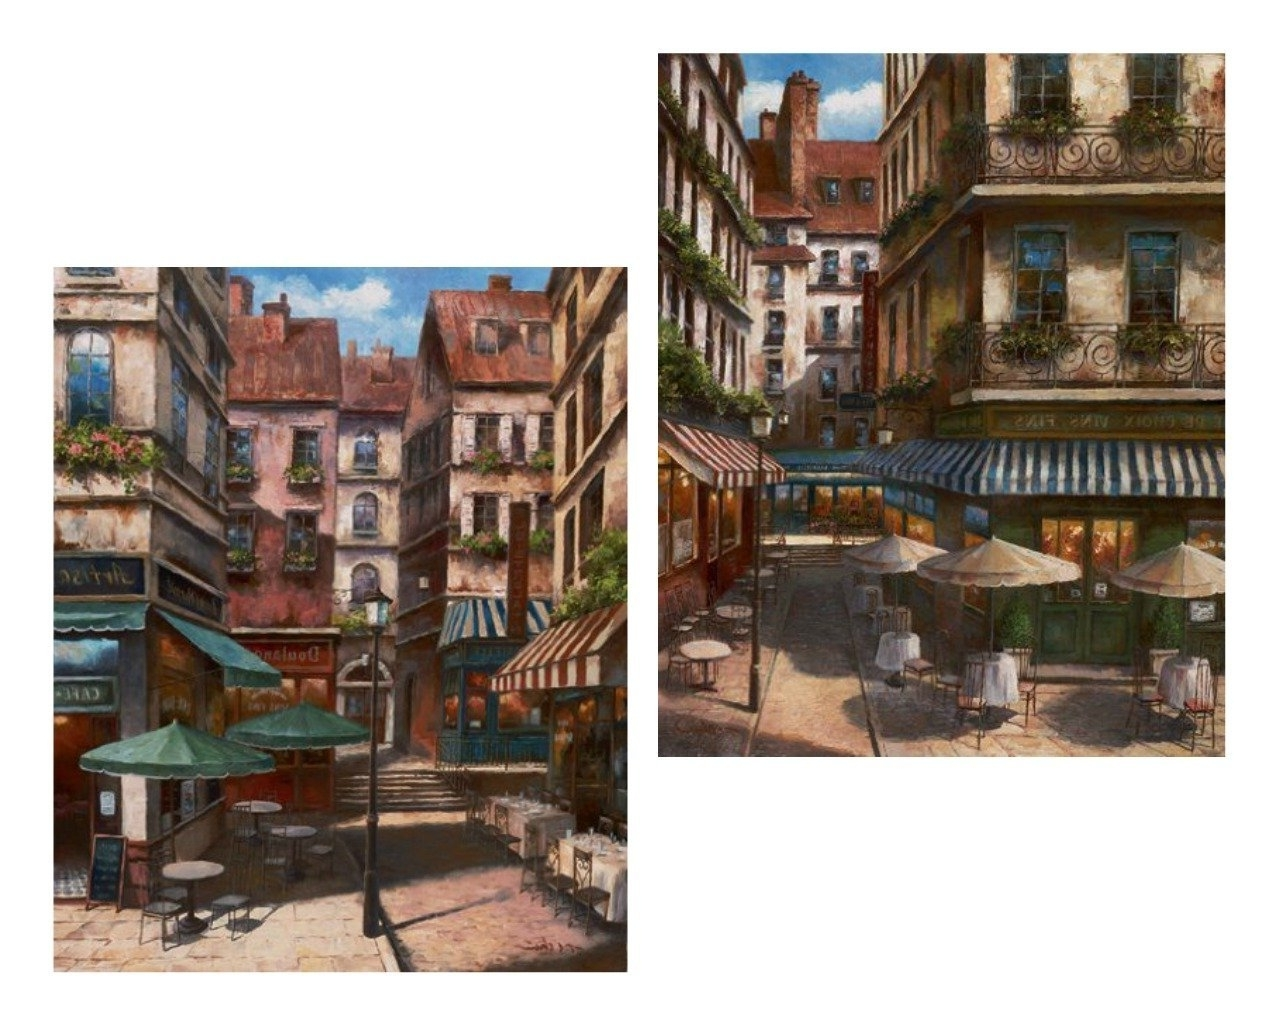 Amazon: 2 La Bistro Italian Cafe Posters Coffee Decor 8X10 Throughout Best And Newest Italian Bistro Wall Art (View 1 of 15)